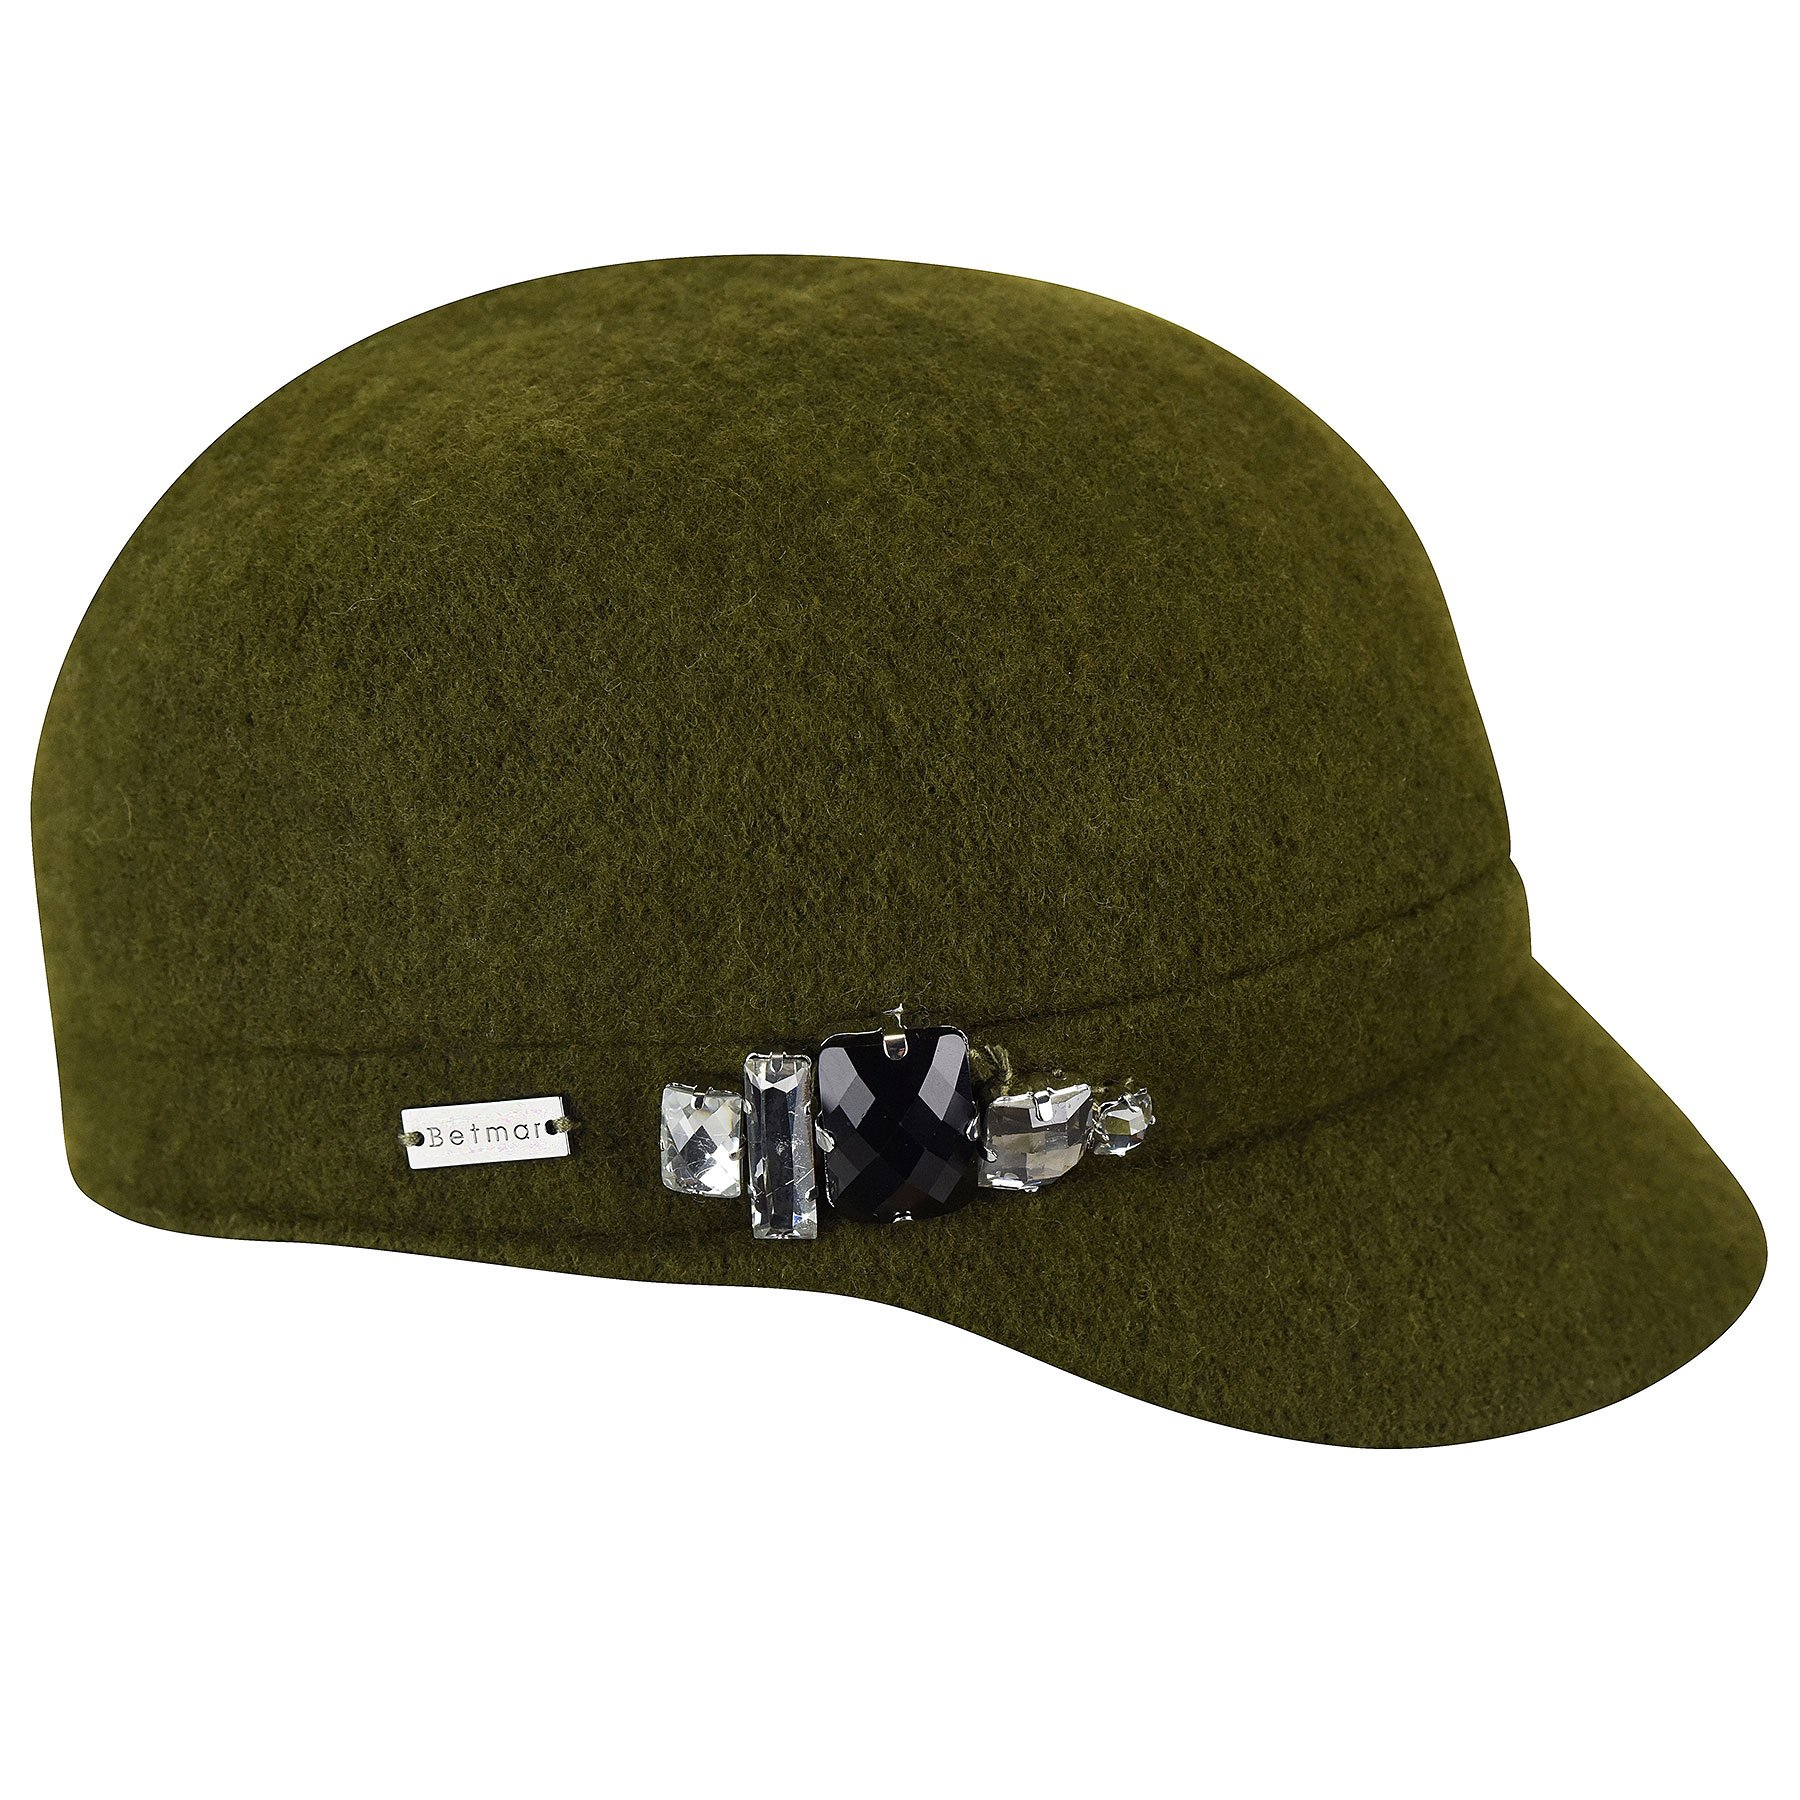 Betmar Women's Rhinstone Cap Wool with Sparkling Trim, Olive, One Size